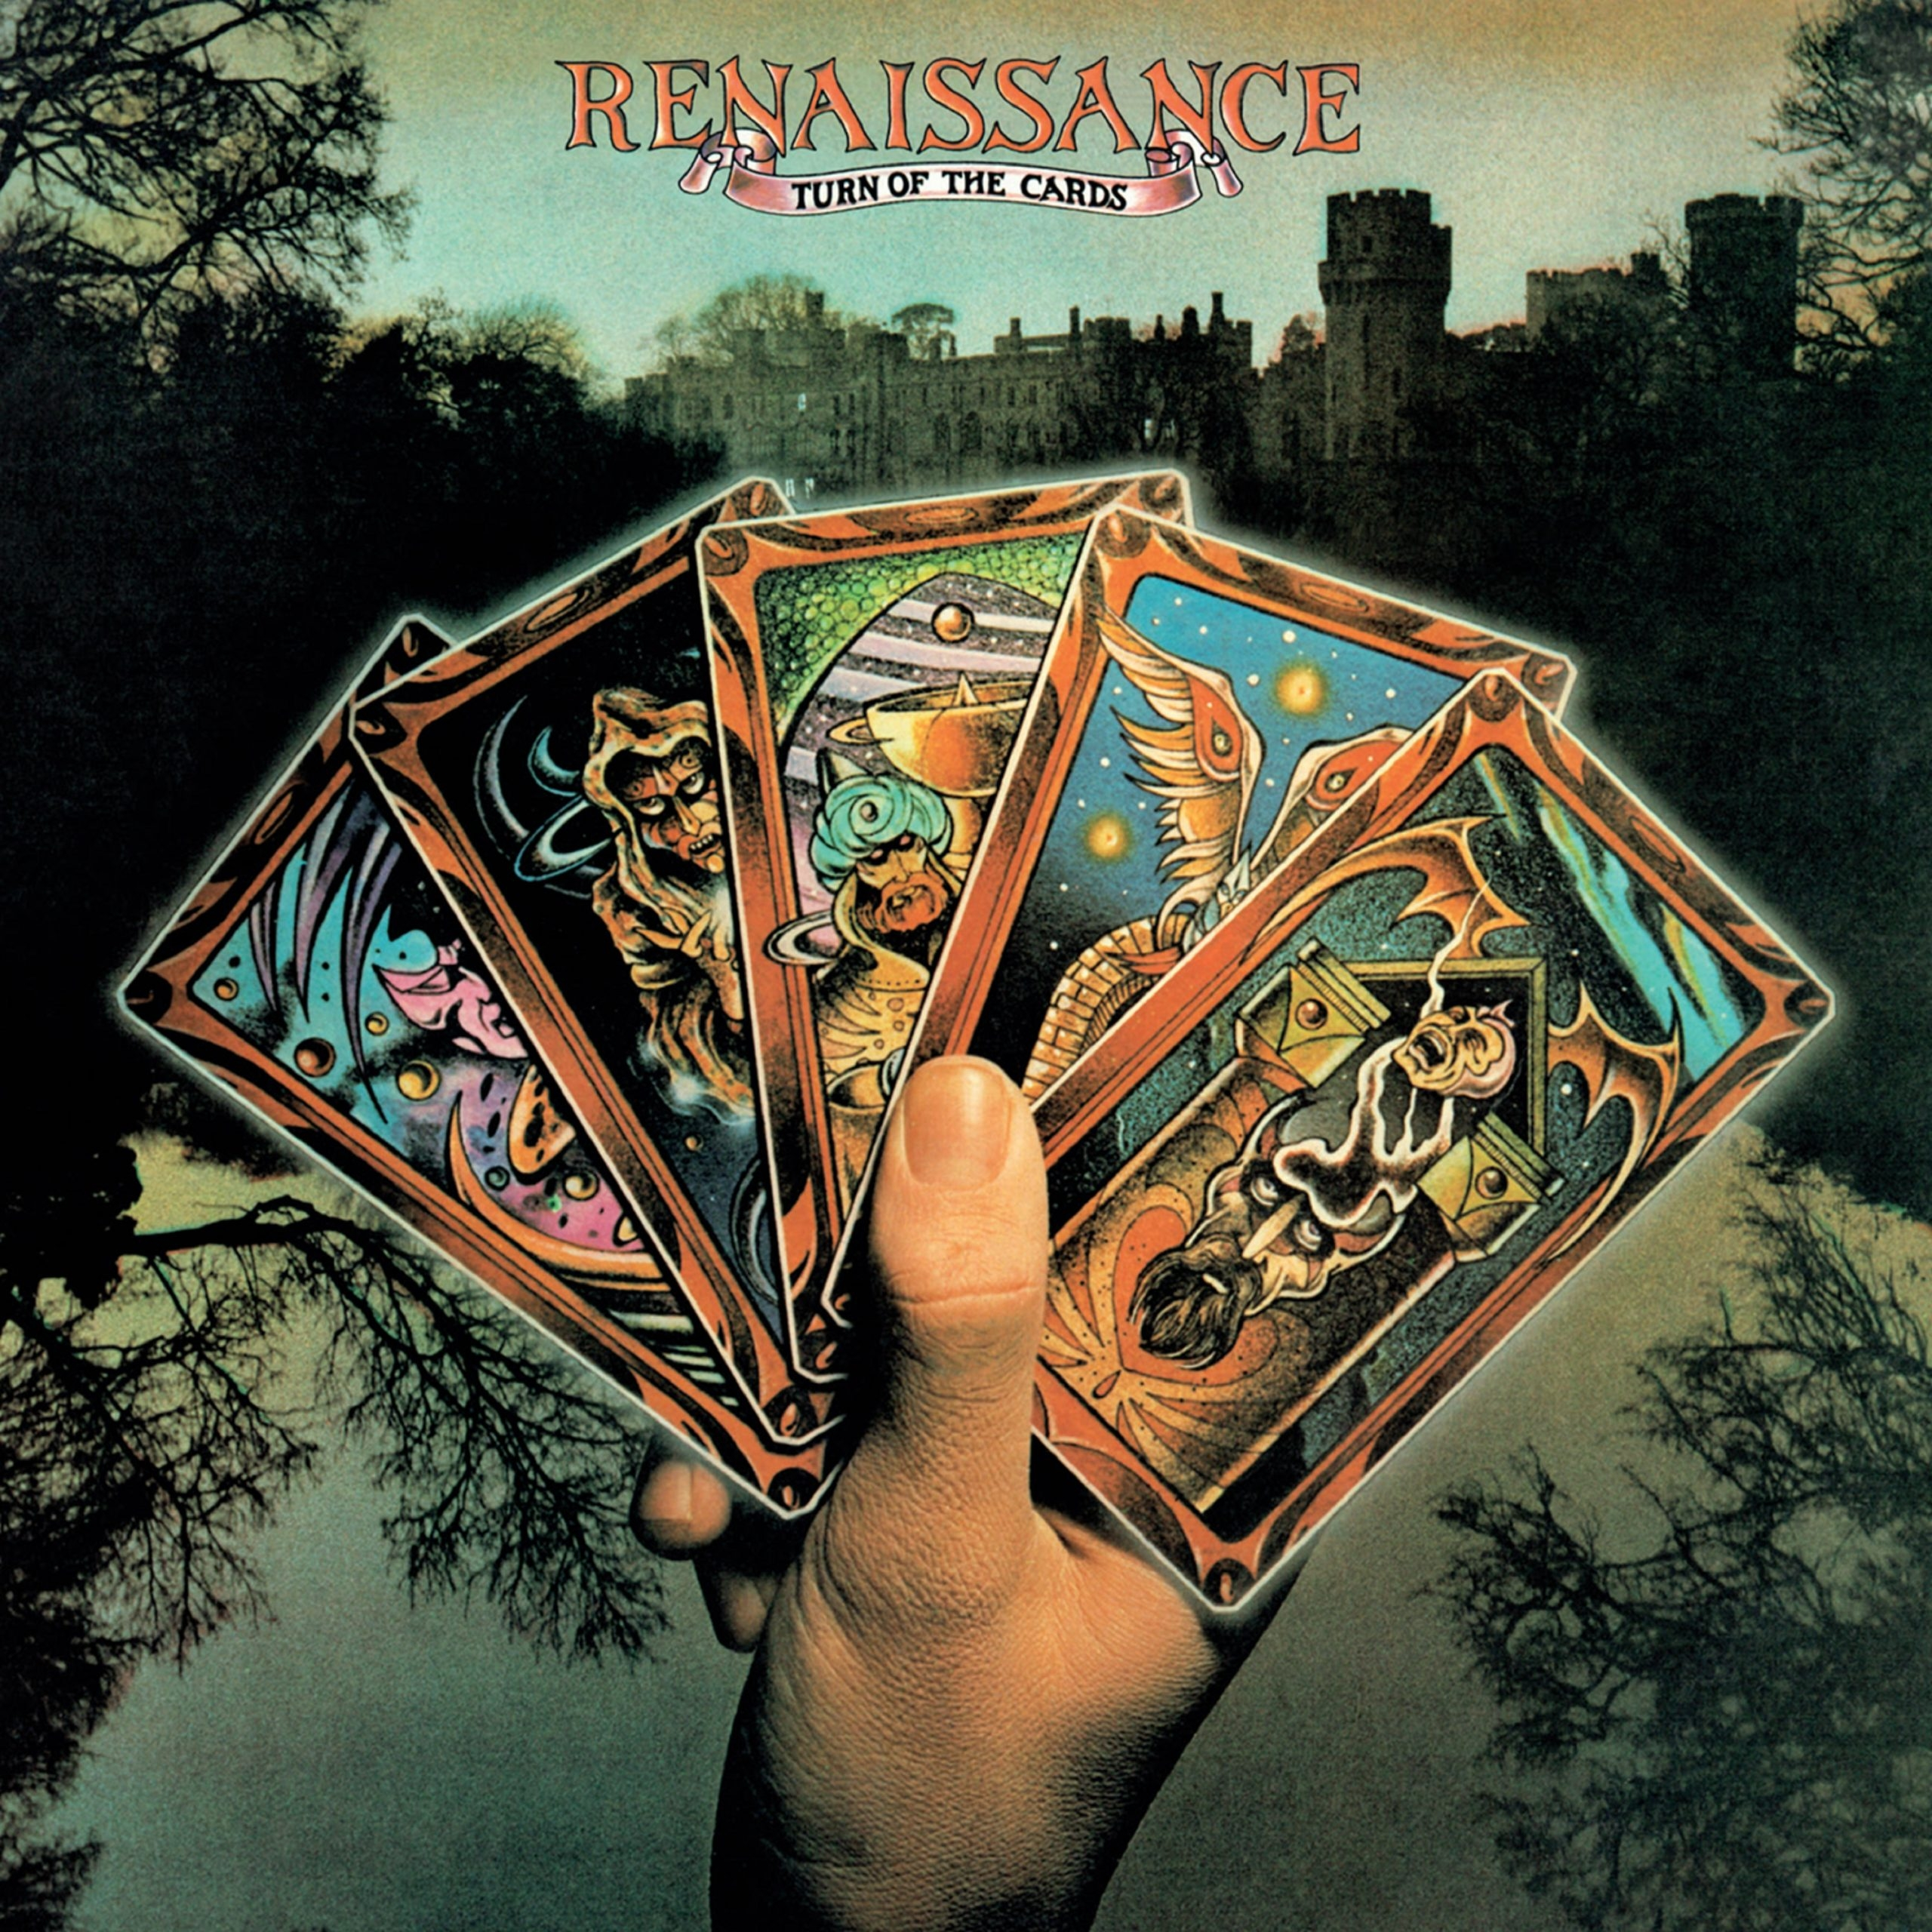 Turn Of The Cards, 3CD / 1DVD Remastered & Expanded Boxset Edition